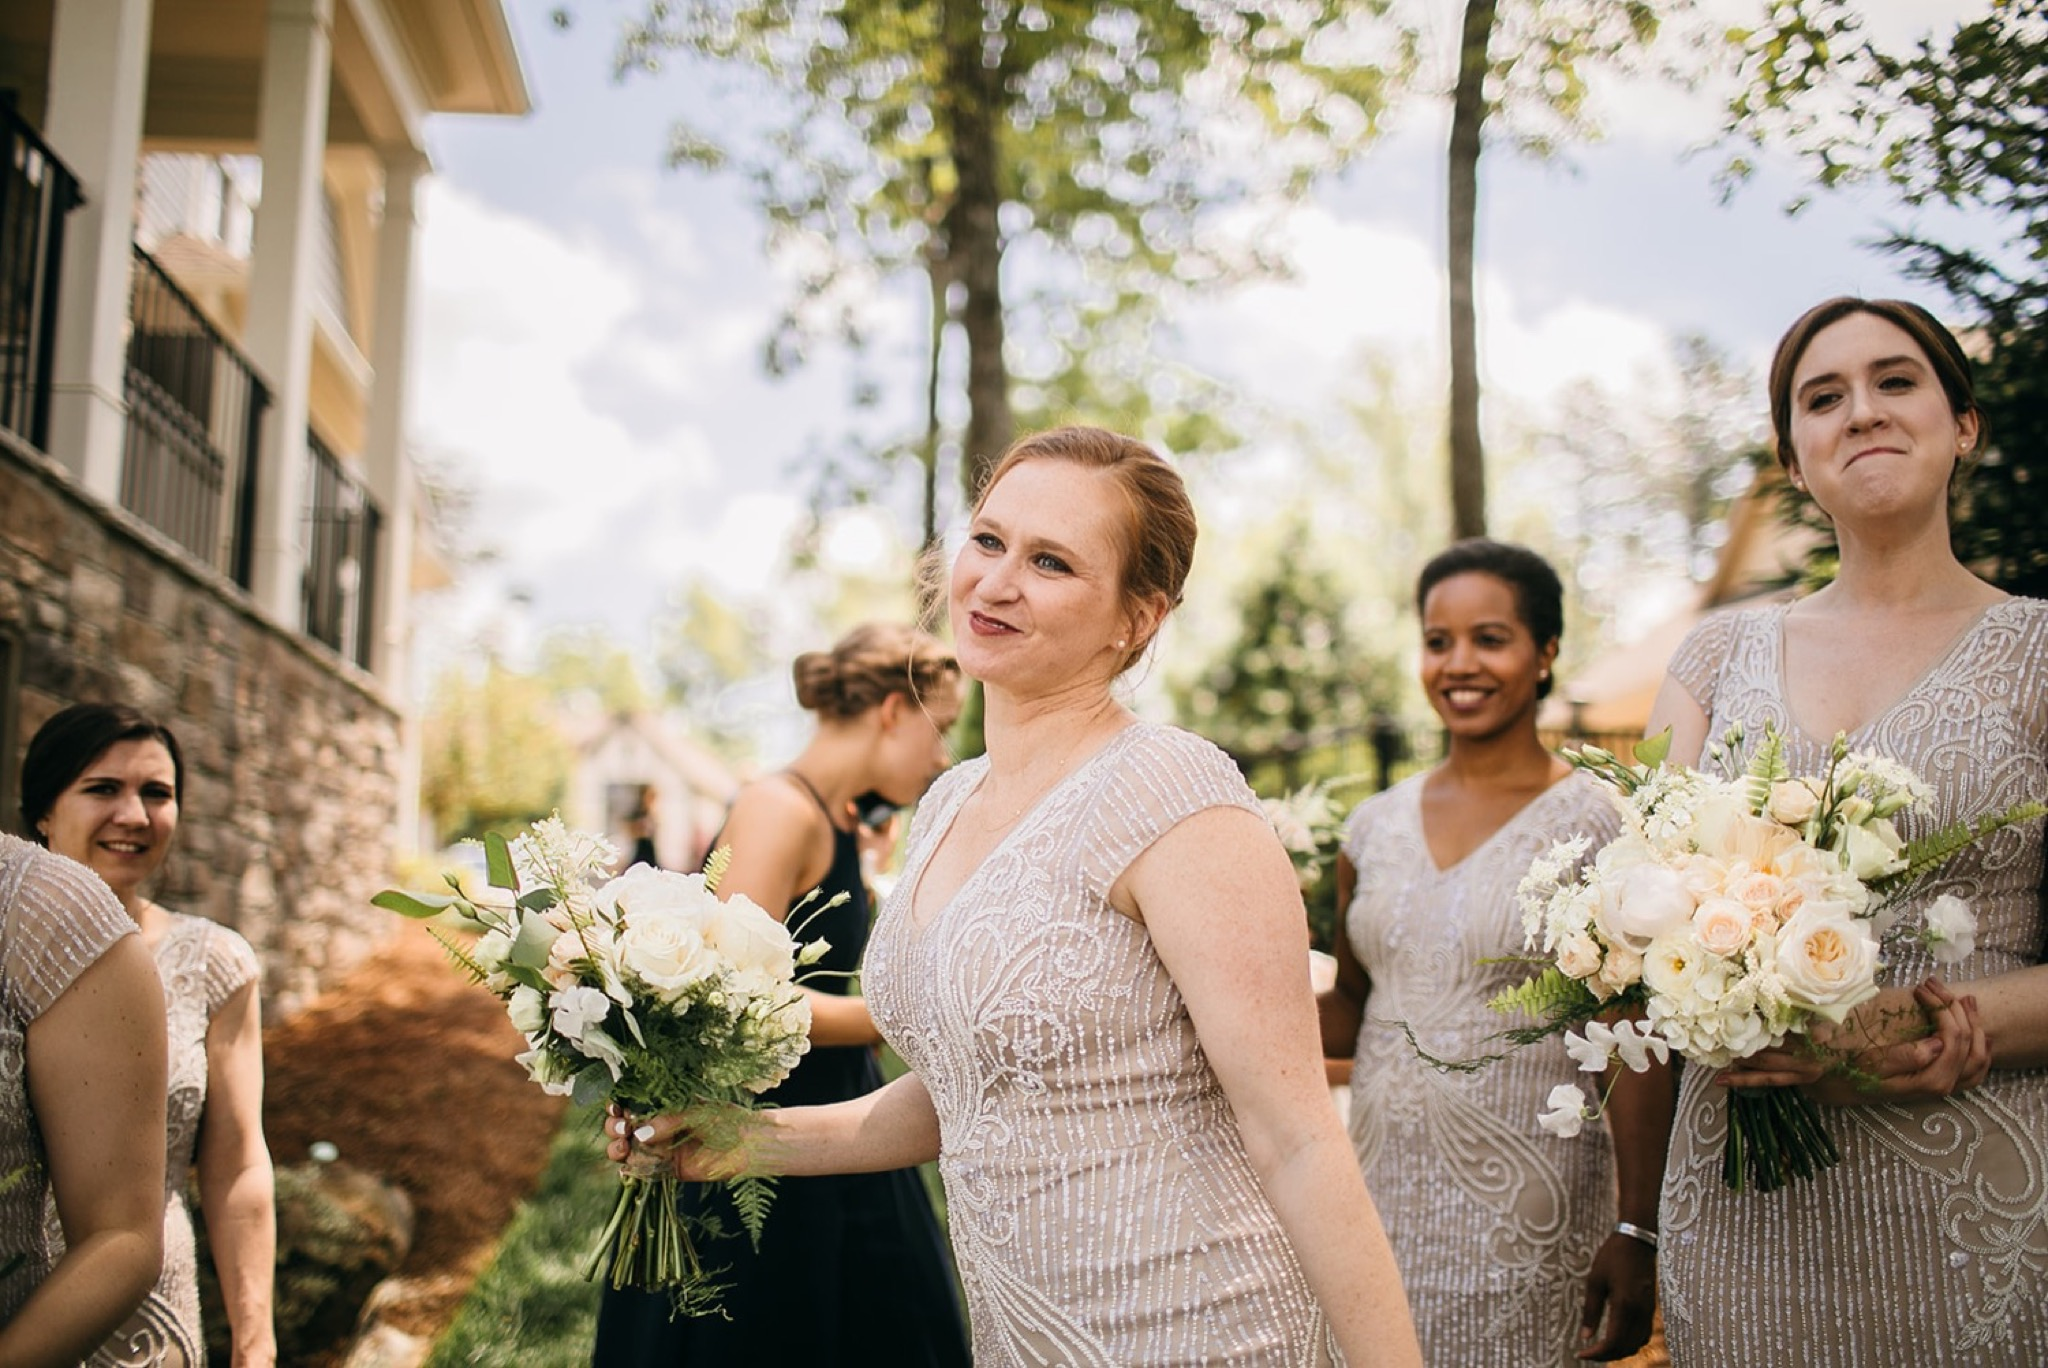 bridesmaids in sequin-decorated dresses hold bouquets of white and light peach flowers